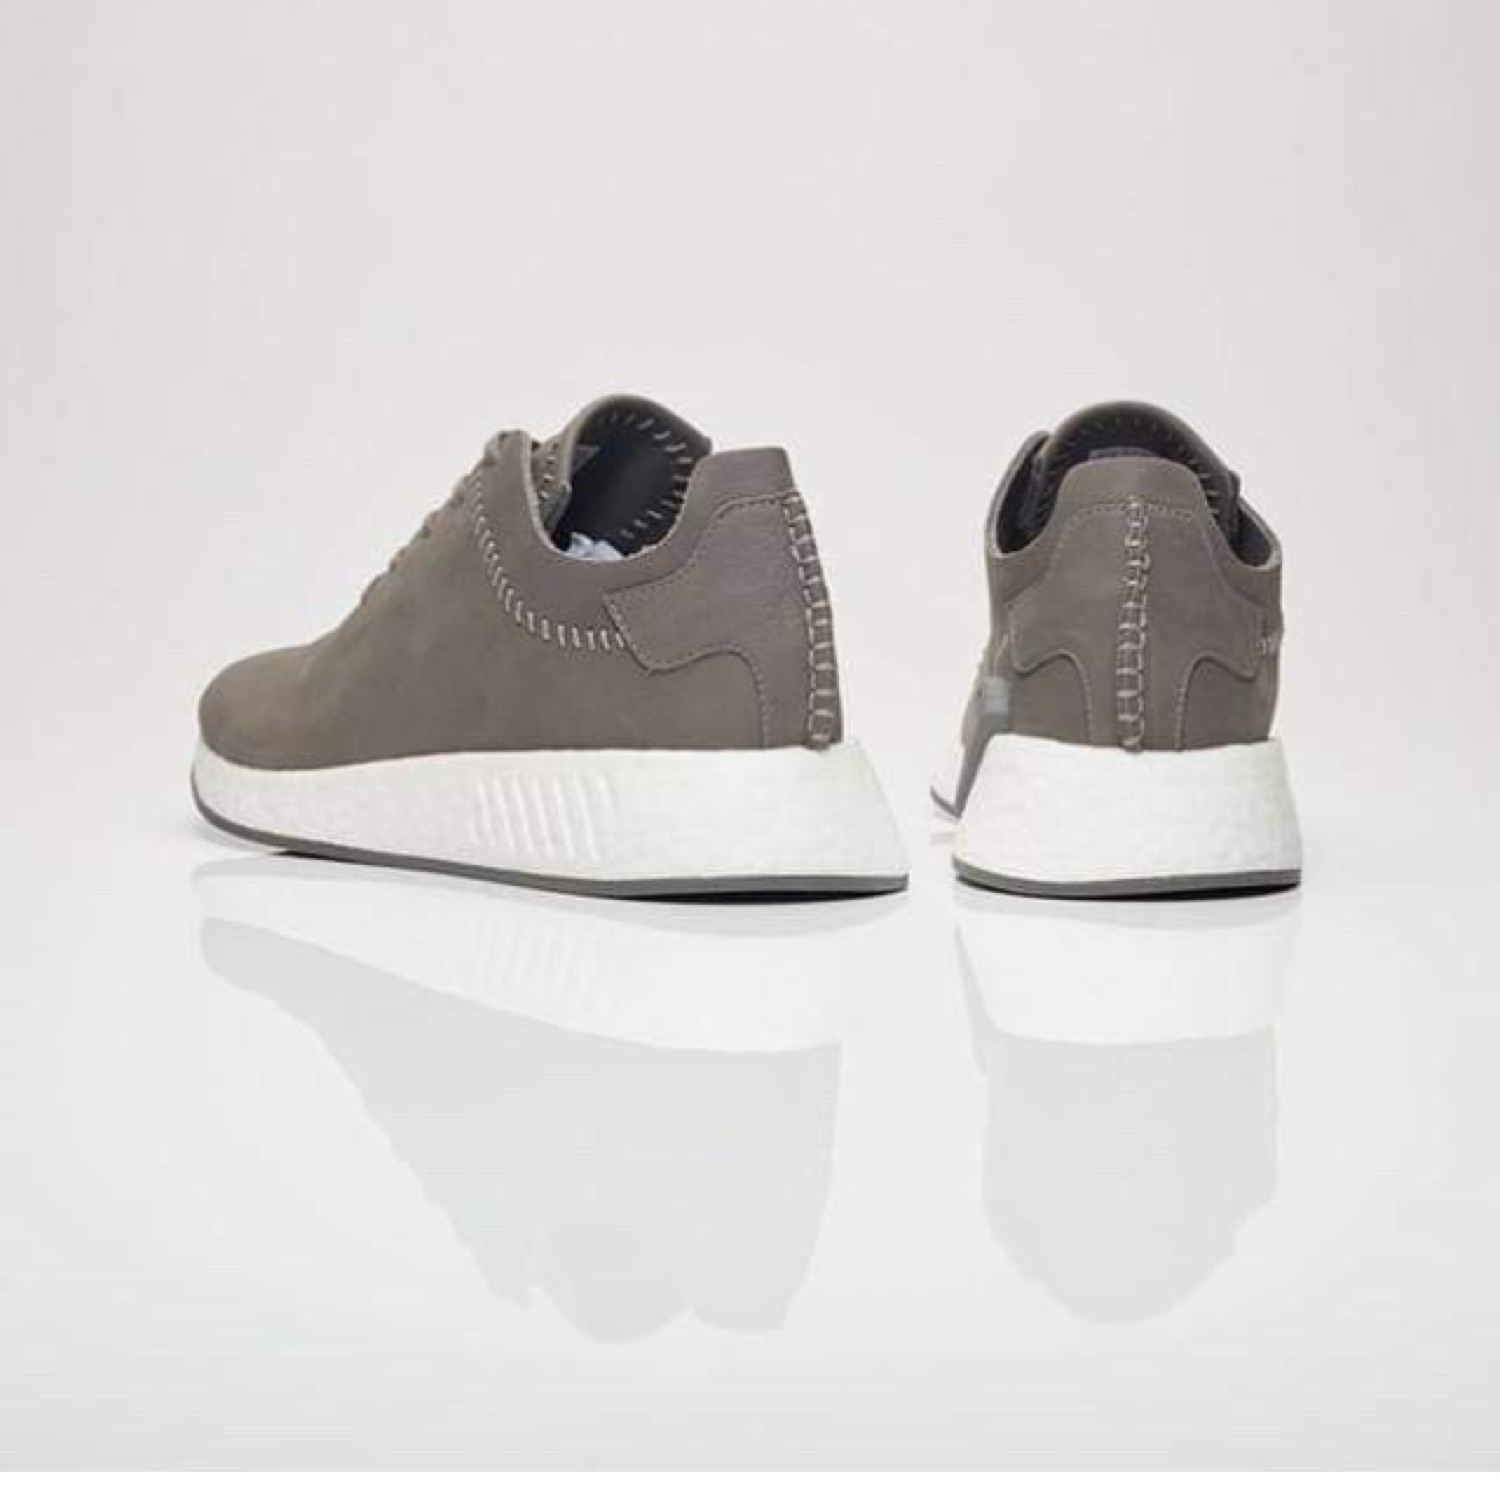 Adidas Nmr R2 X Wings+Horns